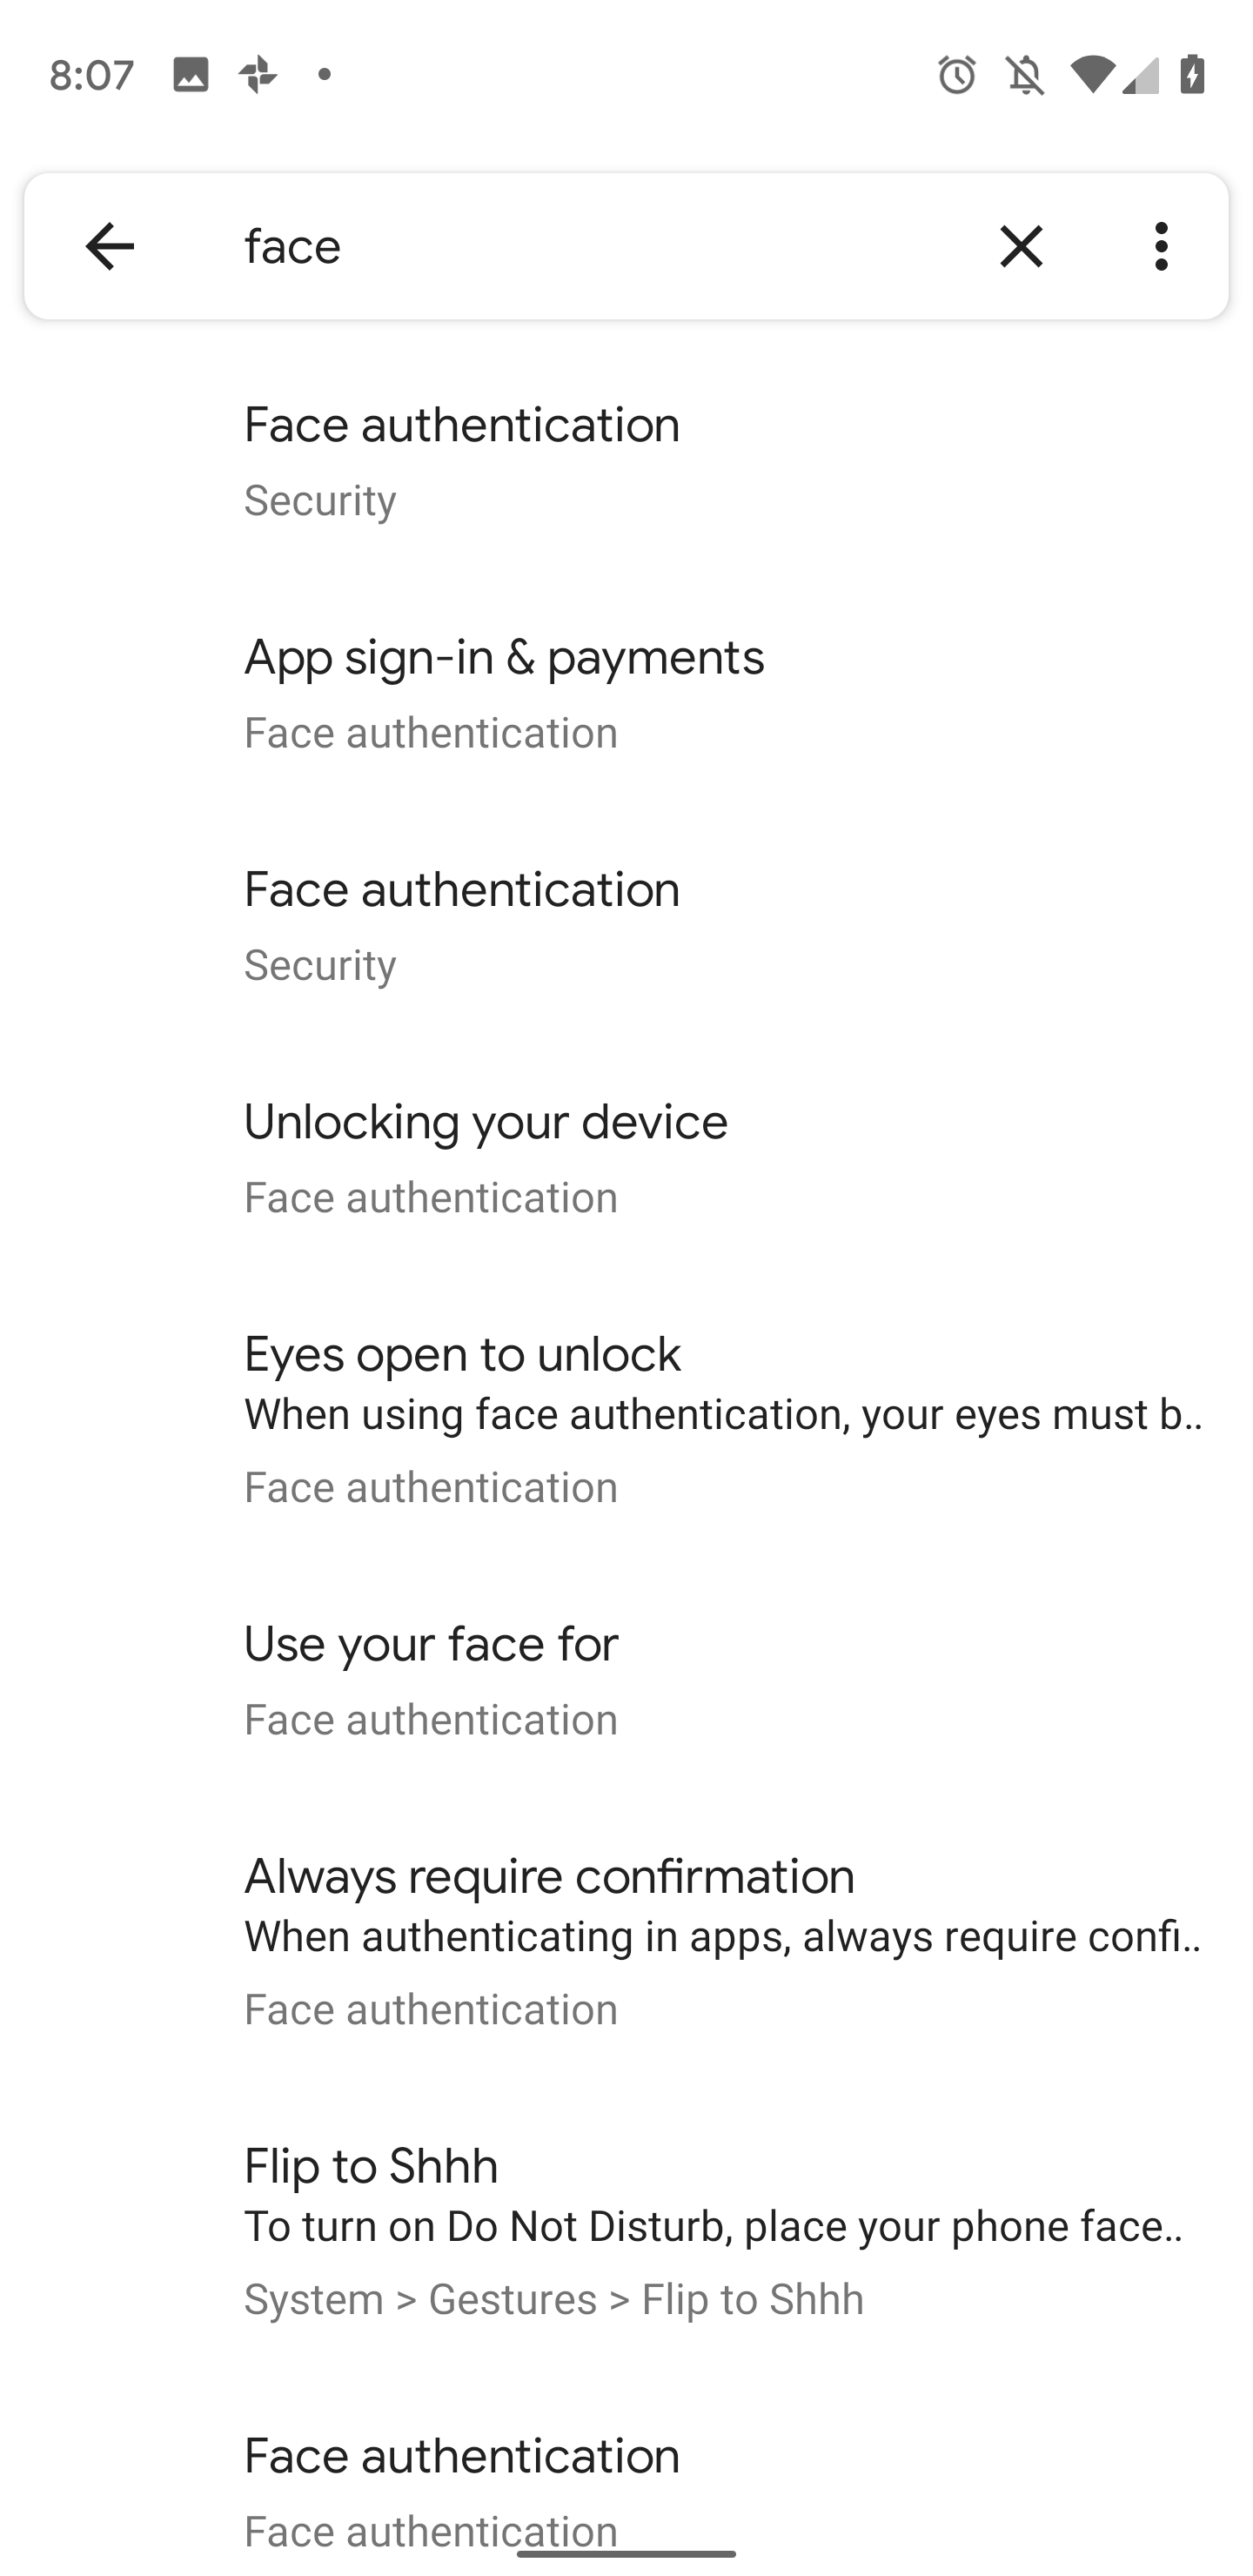 Face authentication' details in Android Q Beta 4 tease